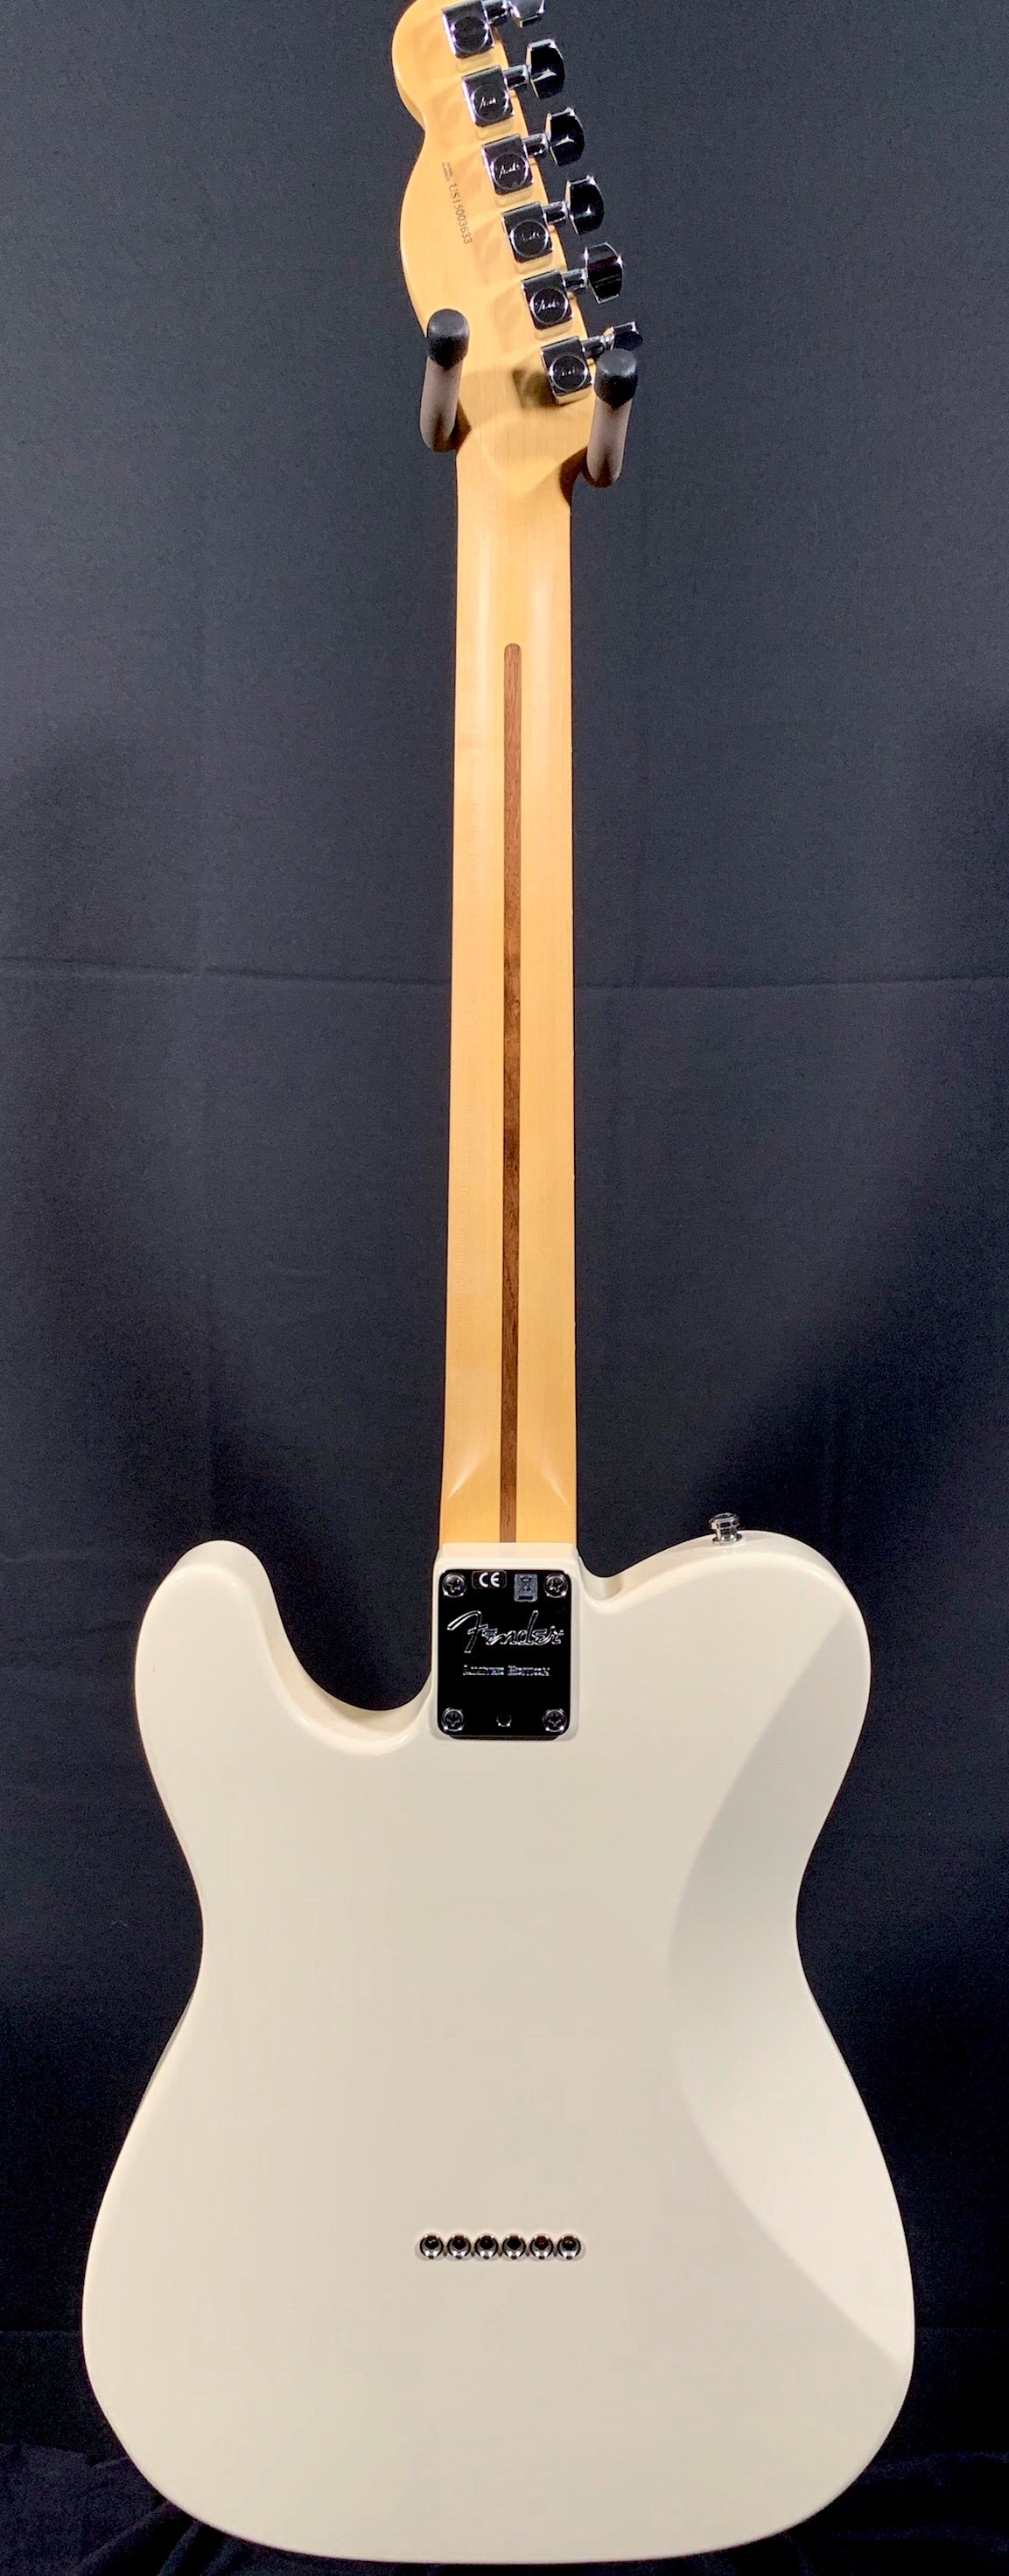 ****SOLD**** 2015 Fender Limited Edition Telecaster Only 100 made